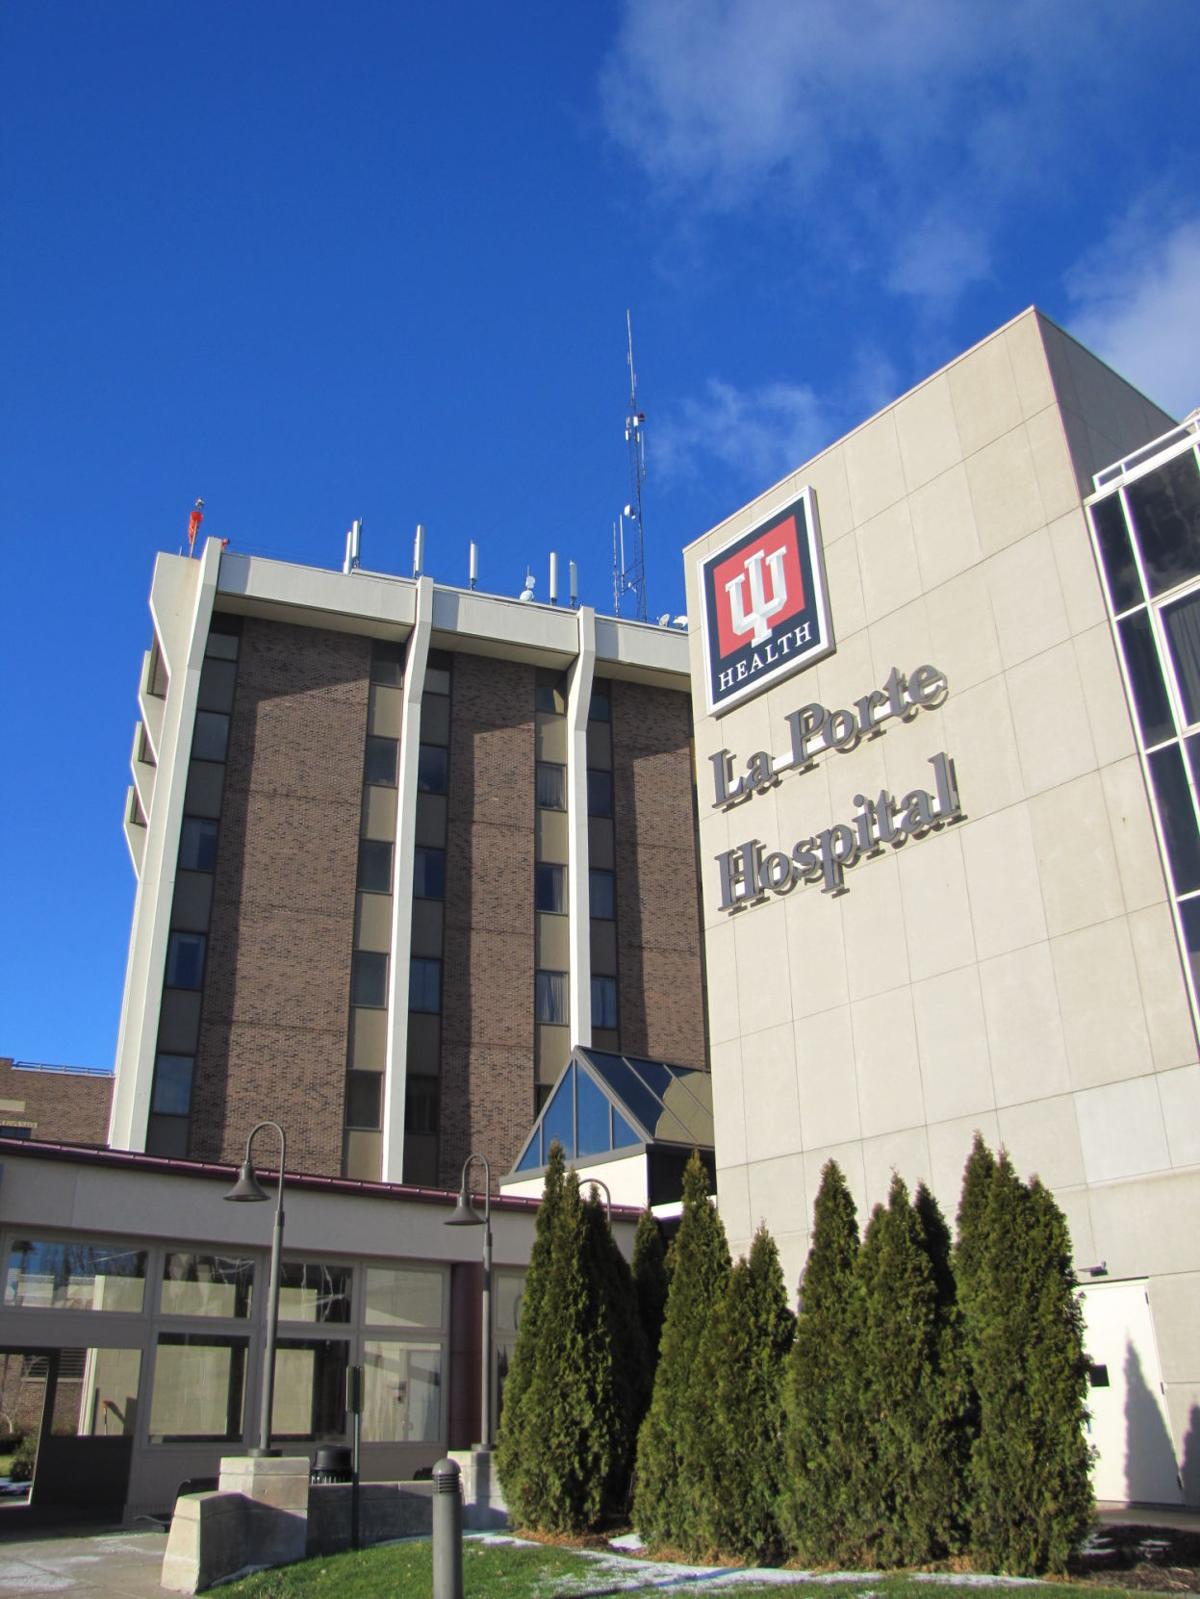 Laporte and porter hospitals combine worker rehab services for Iu laporte hospital